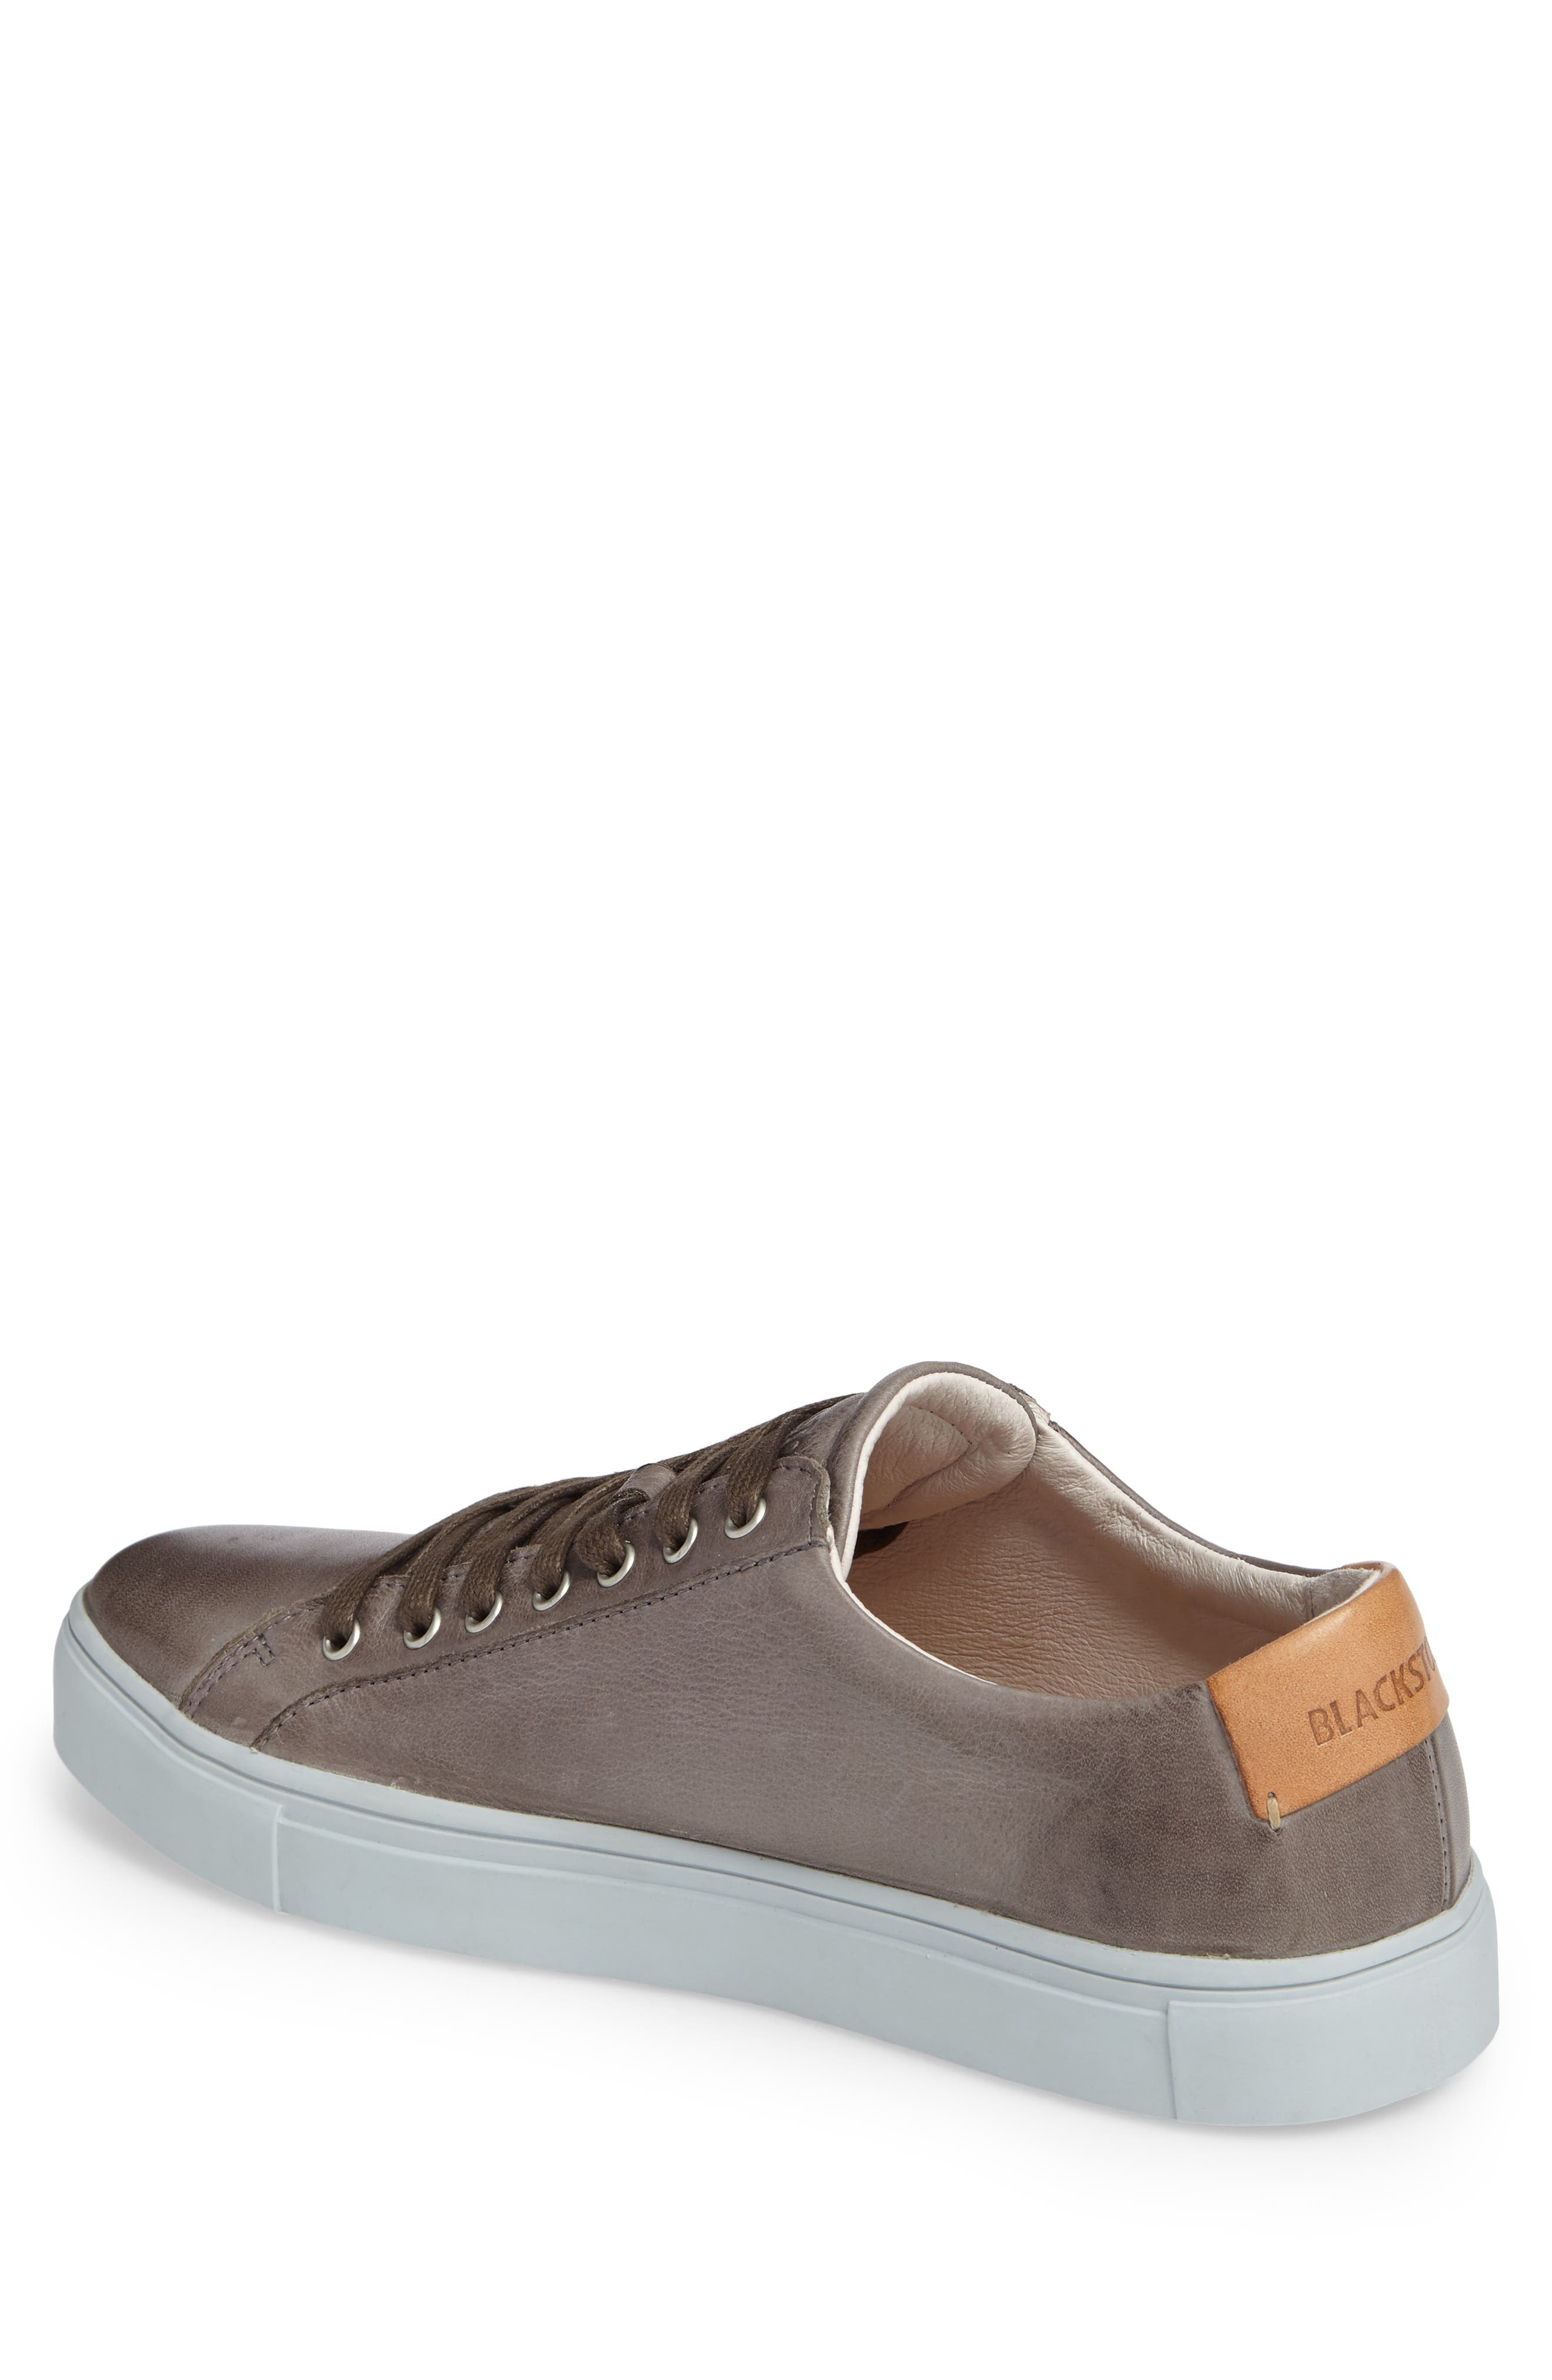 NM01 7 Eyelet Sneaker,                             Alternate thumbnail 2, color,                             Charcoal Leather